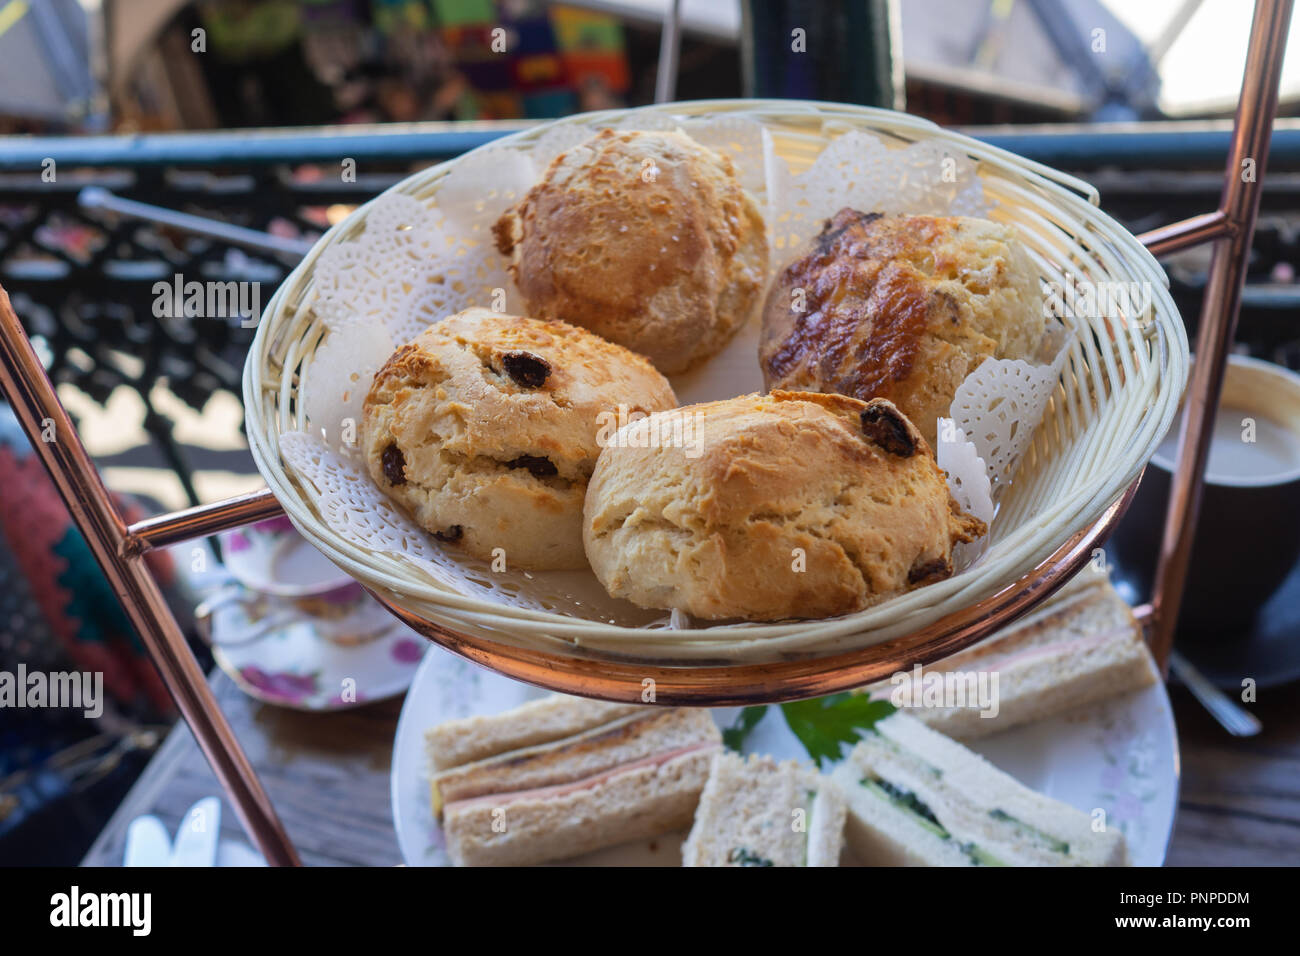 Freshly baked scones in a basket at high tea - Stock Image